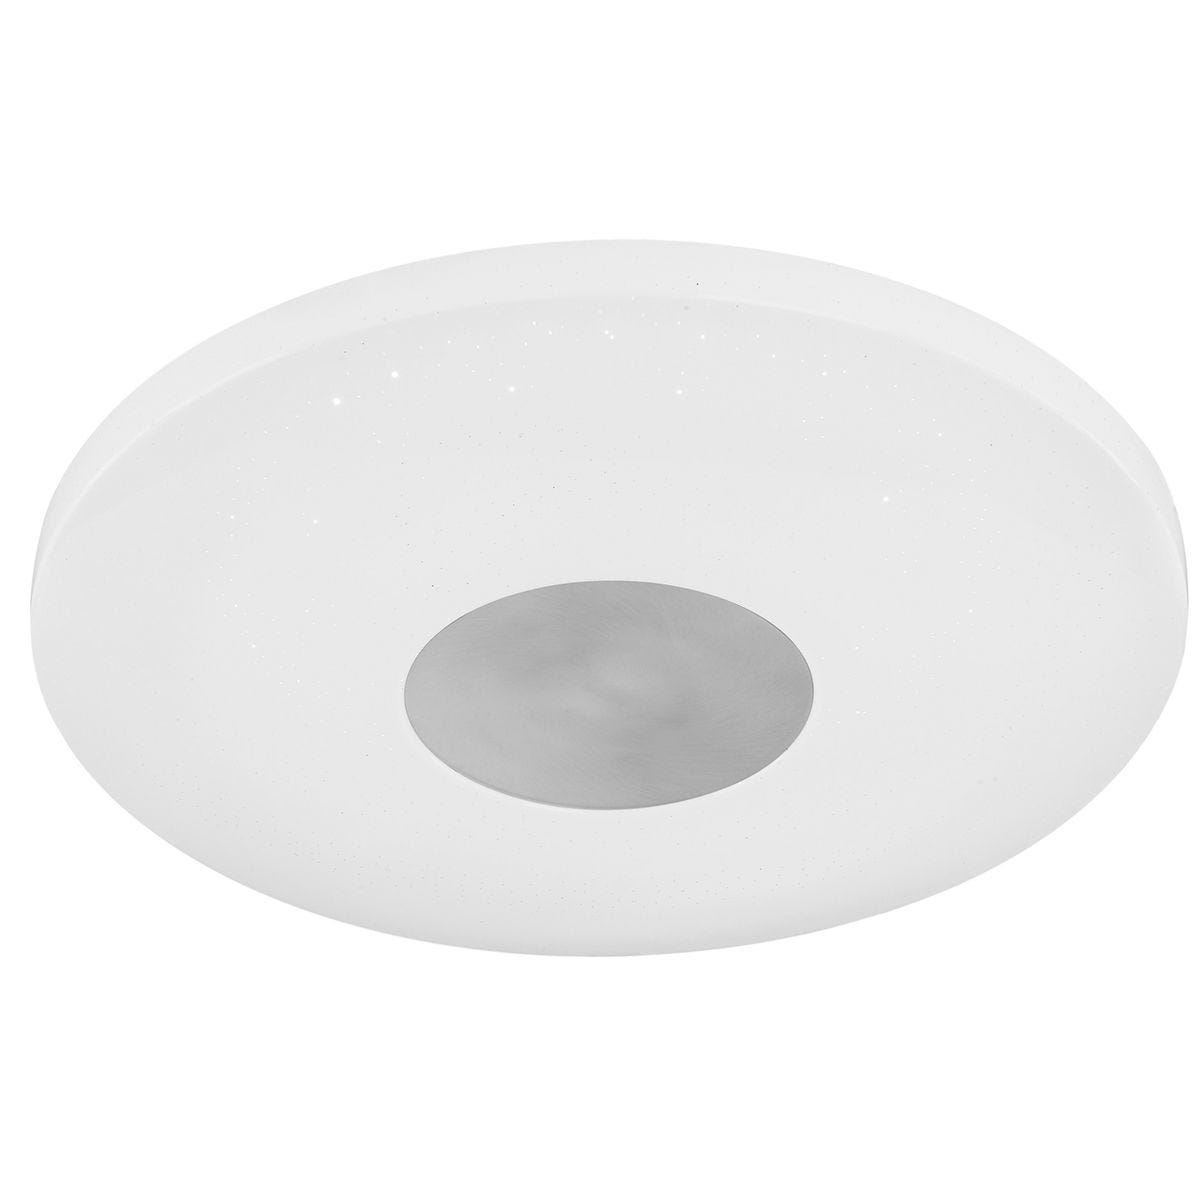 Action Carla Ceiling Lamp - White with LED Bulb